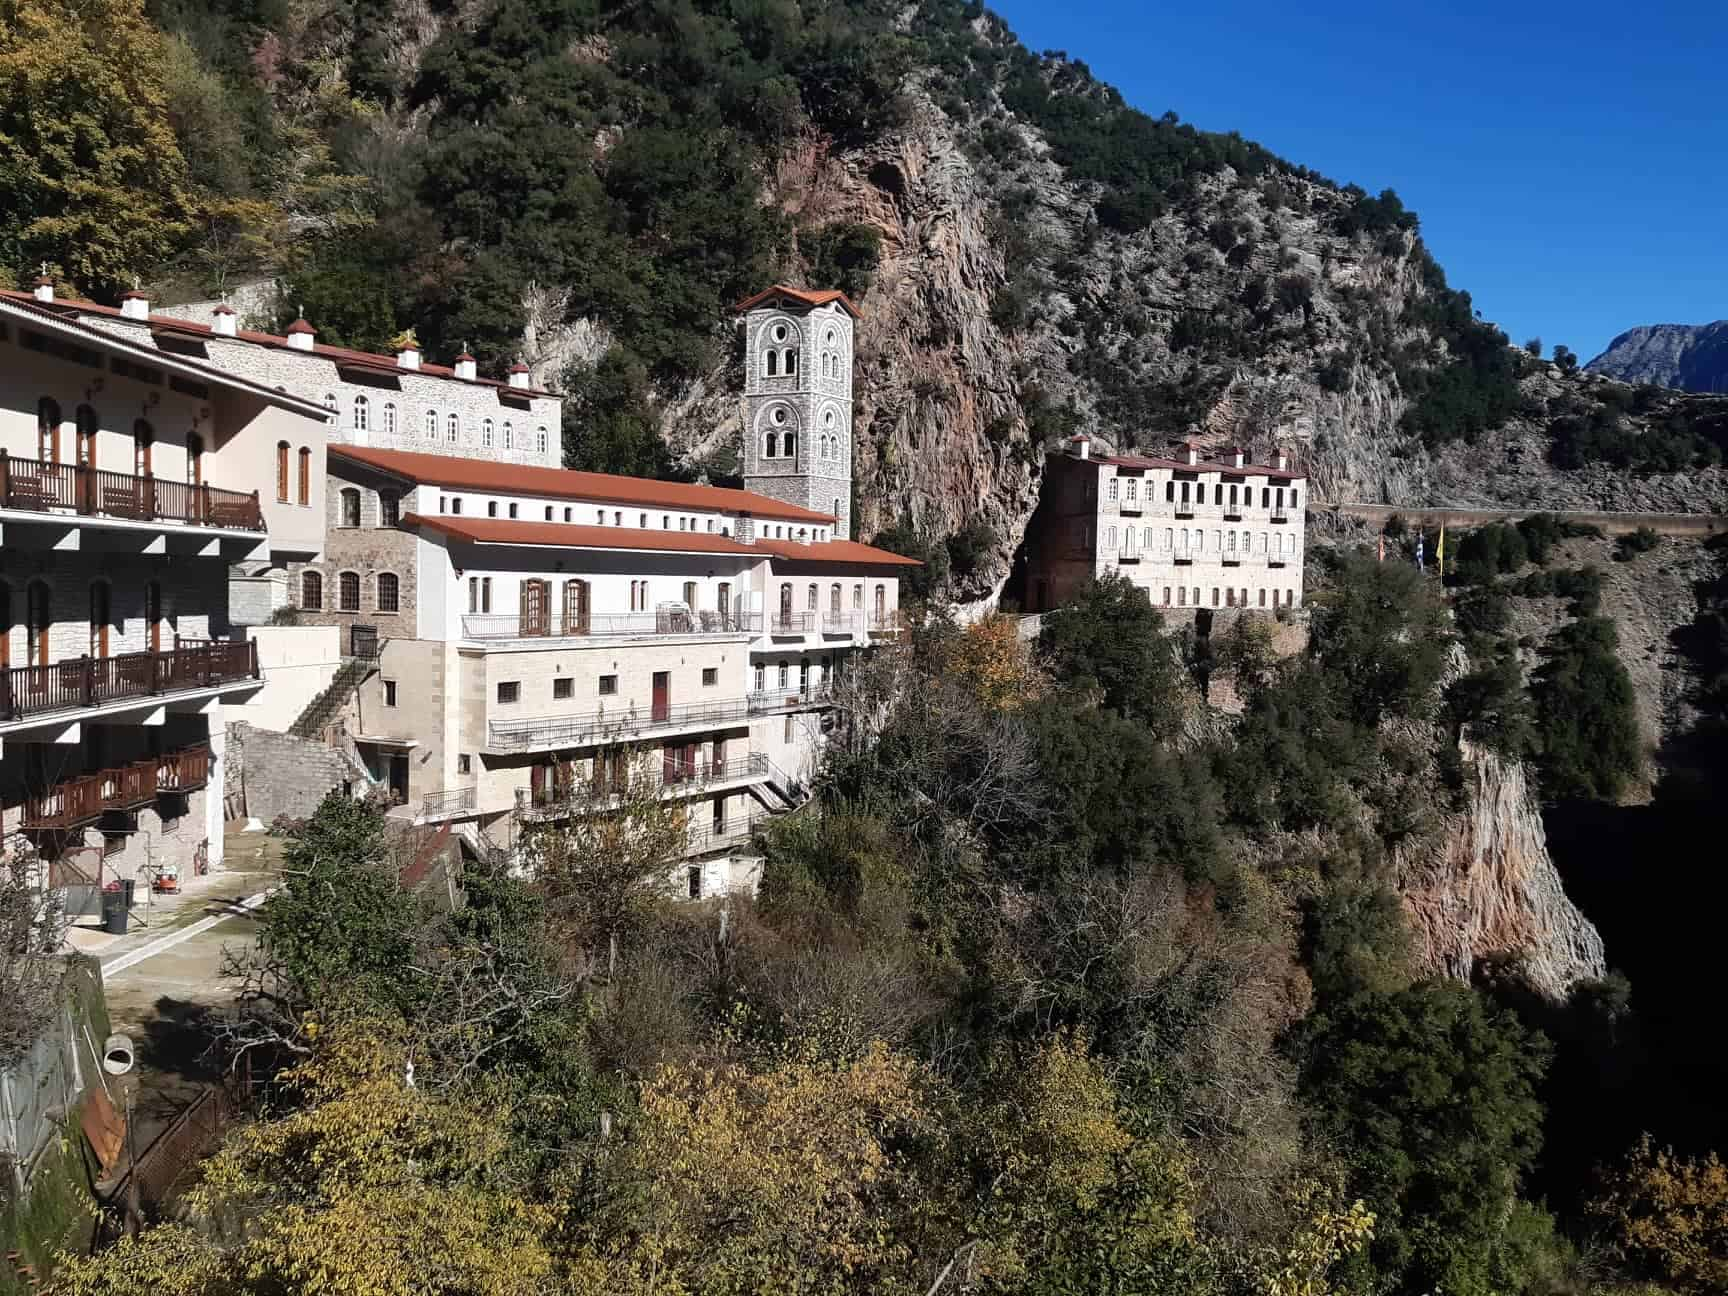 Proussos Monastery is 25km away from Karpenisi